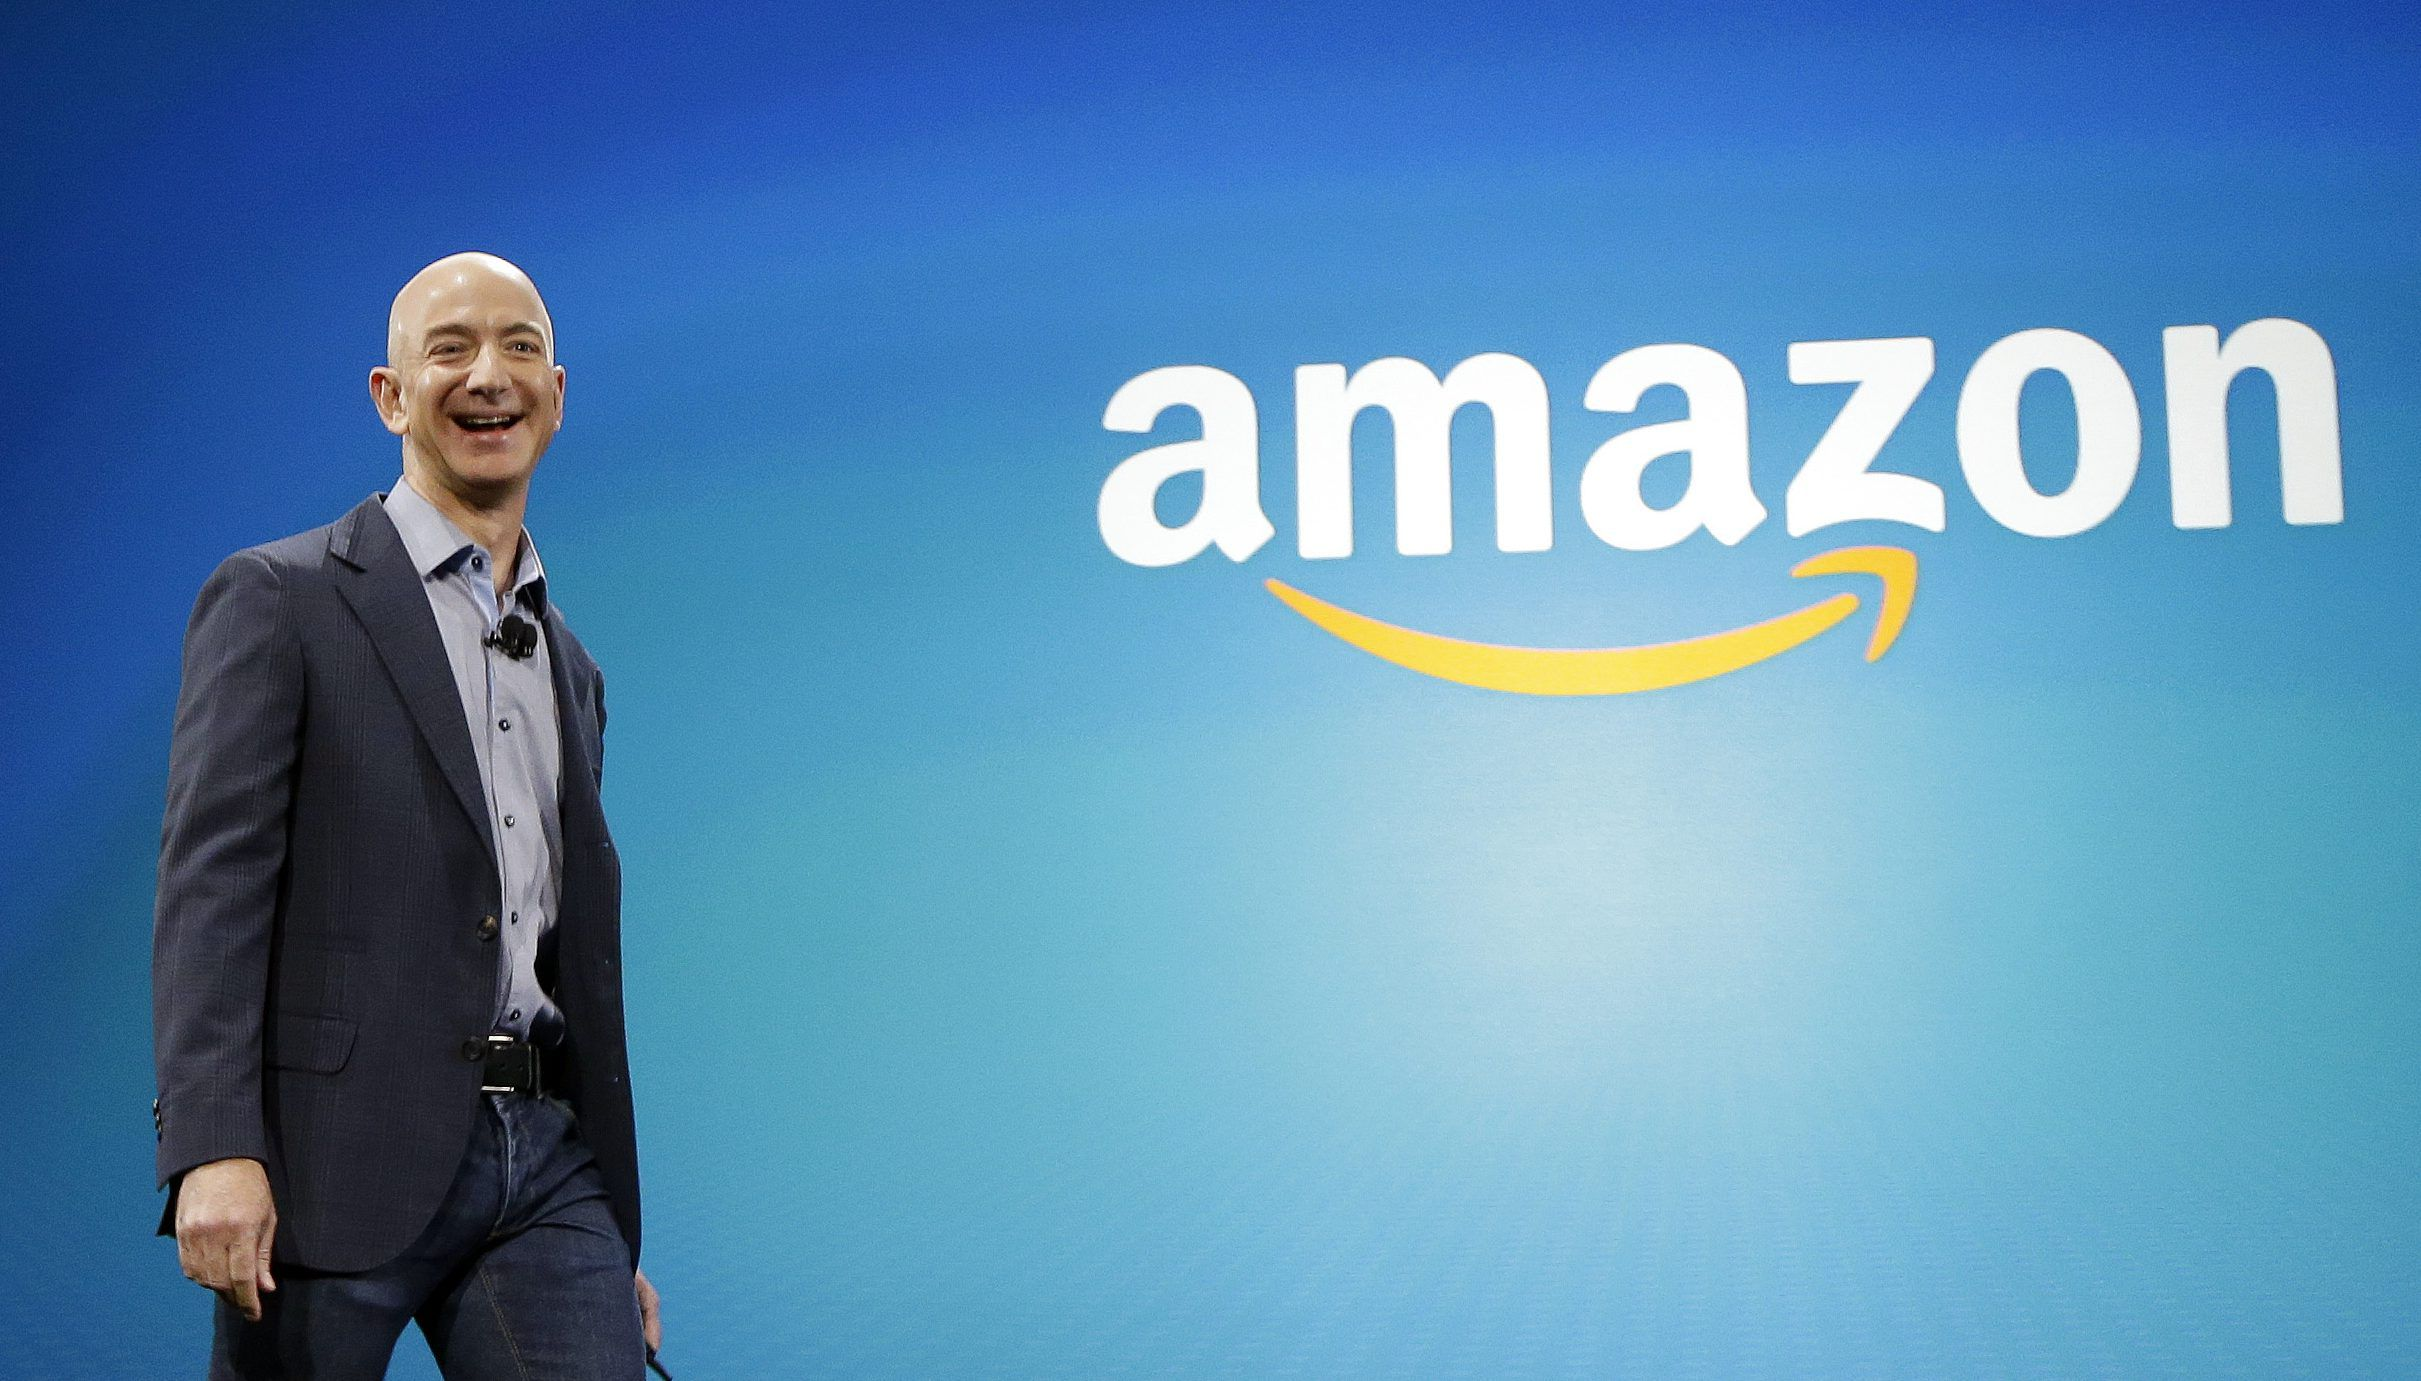 Amazon is Increasing the Price of Prime Membership